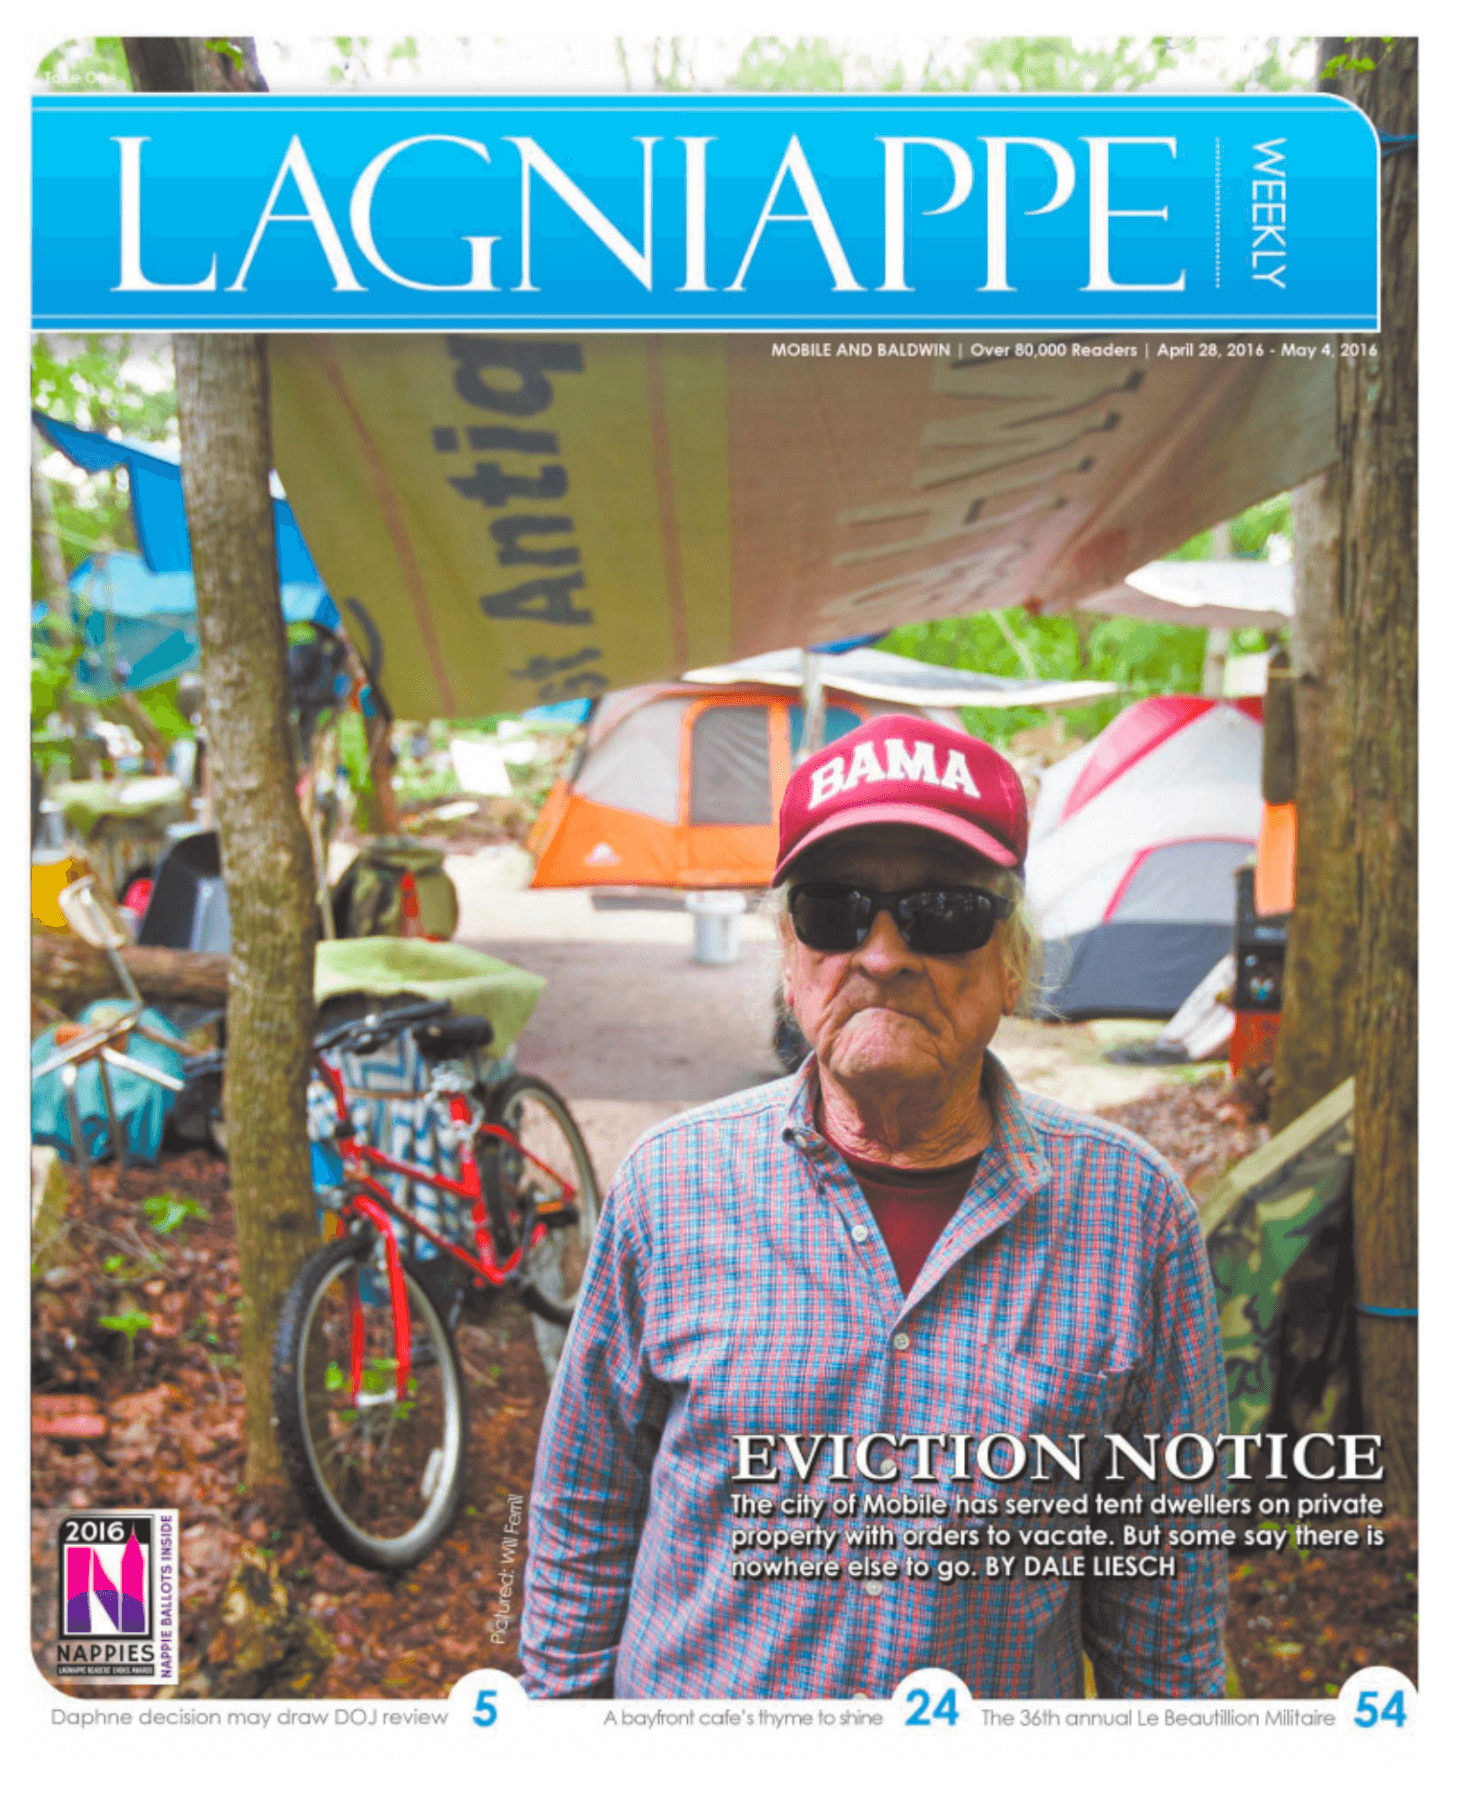 Lagniappe: April 28 – May 4, 2016